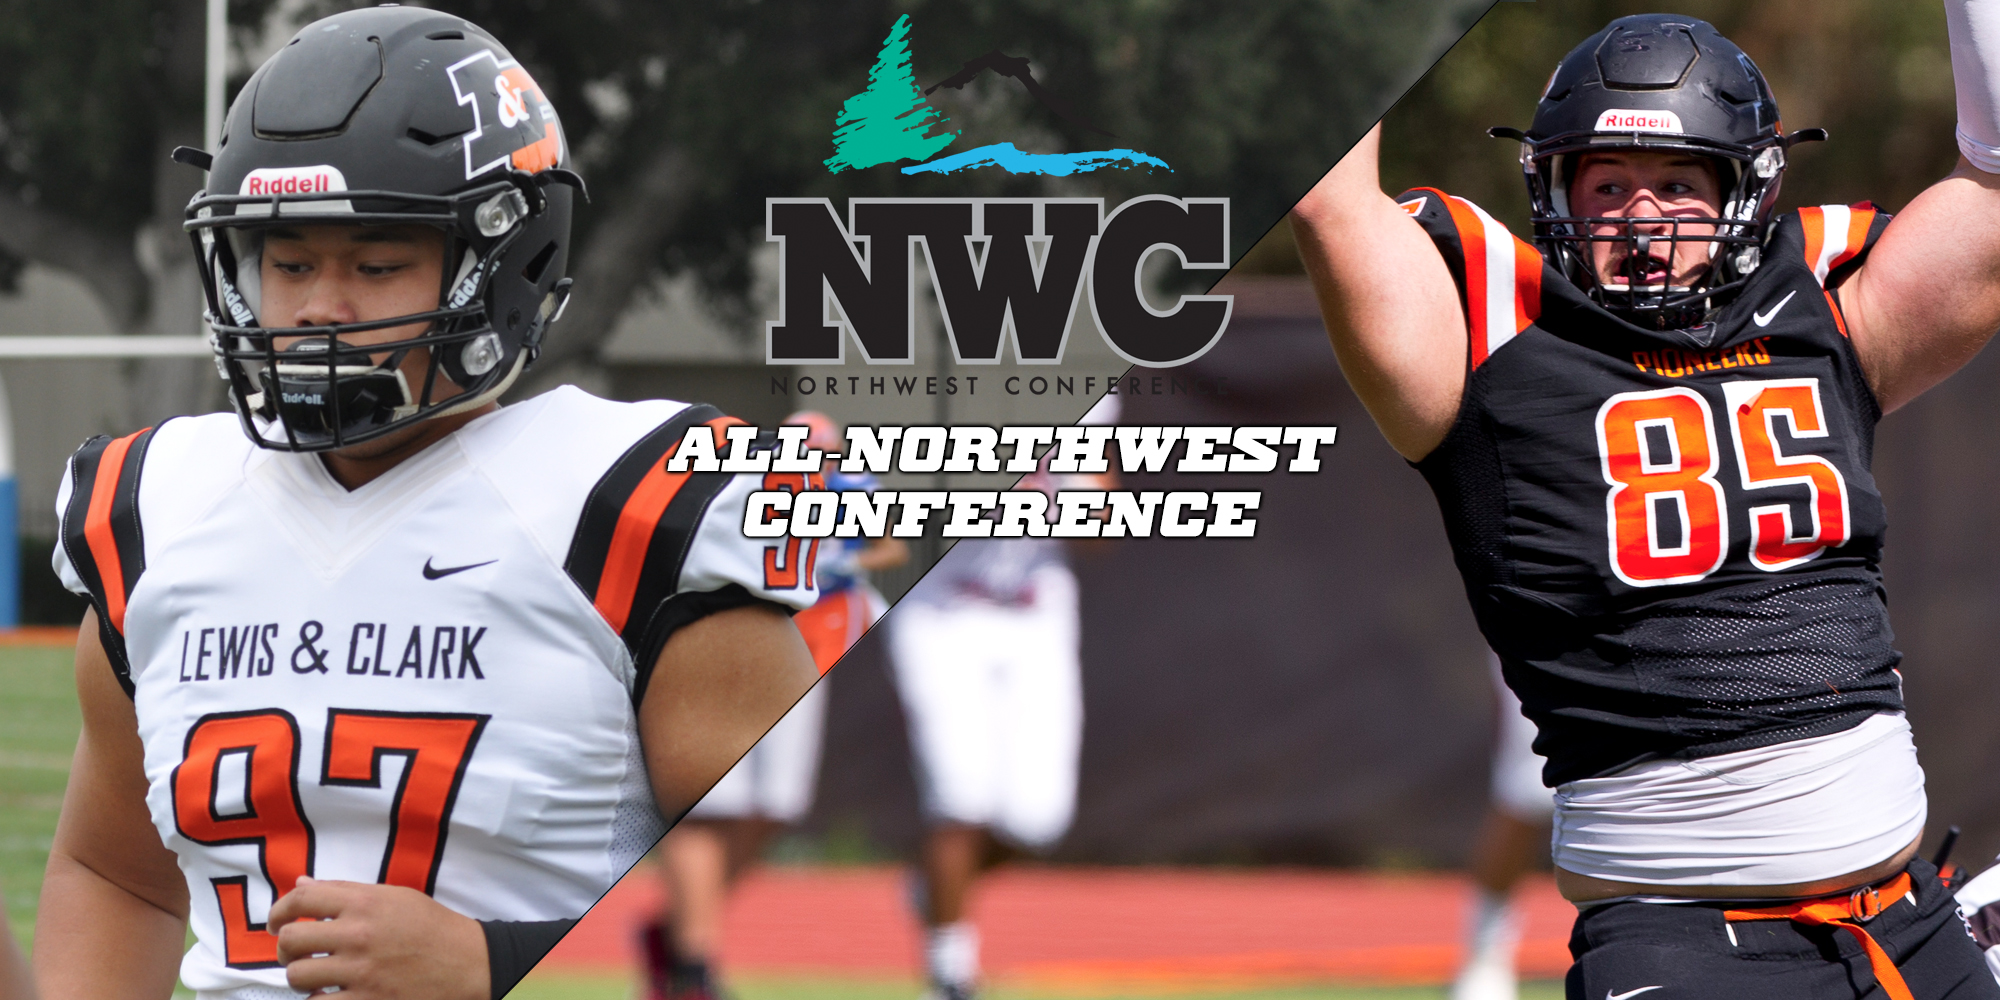 Chang named top freshman, Pios with most All-NWC picks since 2013